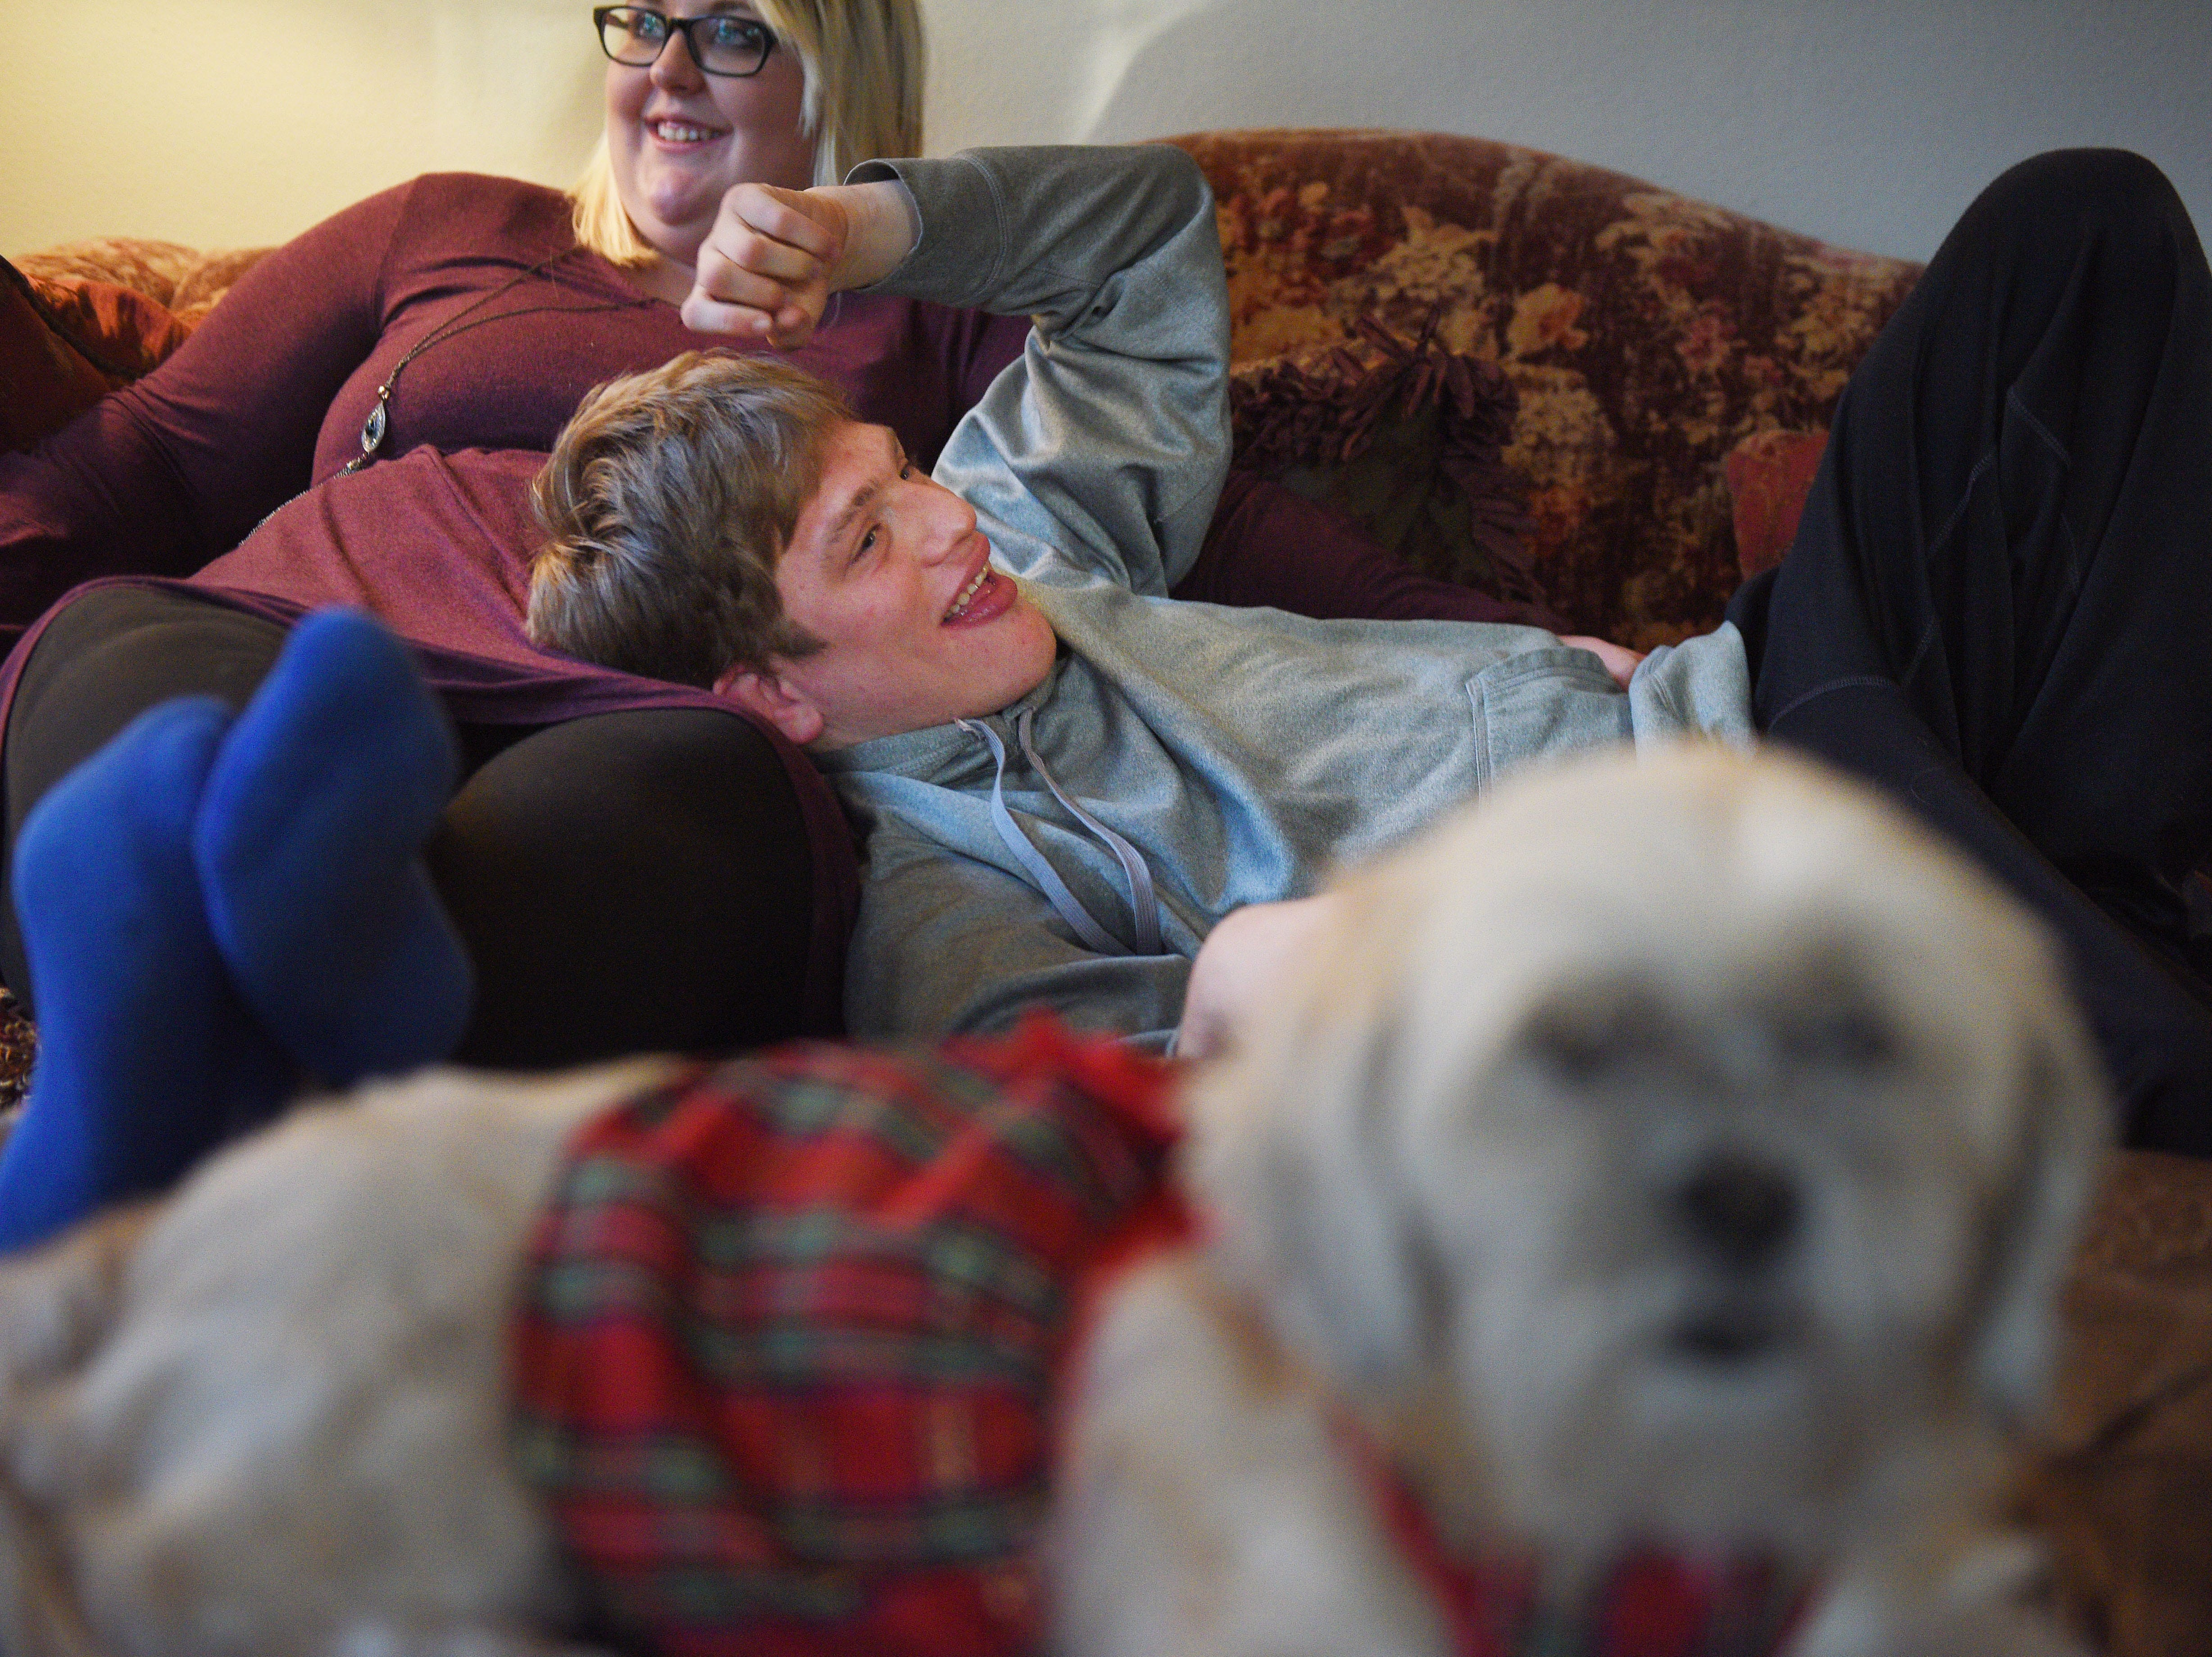 Ben Graff hangs out at his new house with his roommate Jenna Askelson and Chu Chi Wednesday, Nov. 7, in Sioux Falls. He lives with Shared Living Provider Kayla Harris and Askelson.